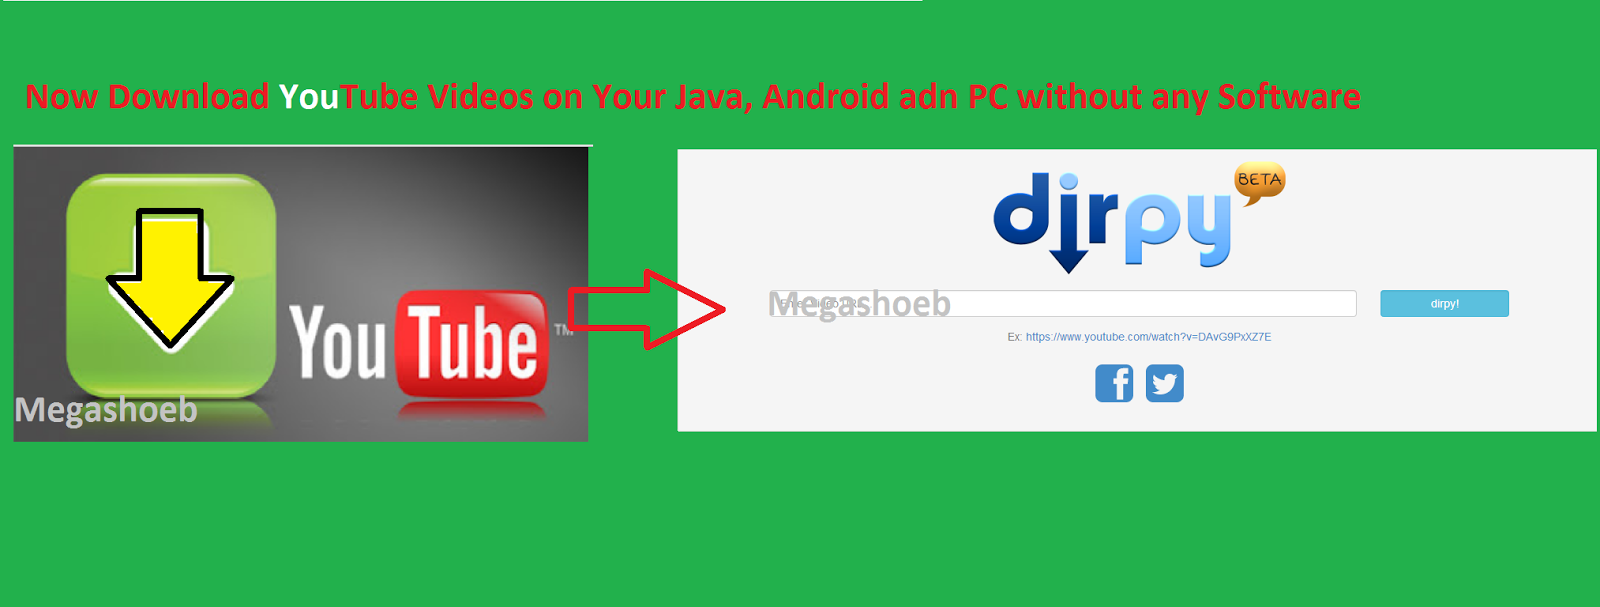 How to download youtube videos without any software on java android want to download youtube on your mobile specially for java users you want to download youtube videos but now its possible to download youtube videos on ccuart Images